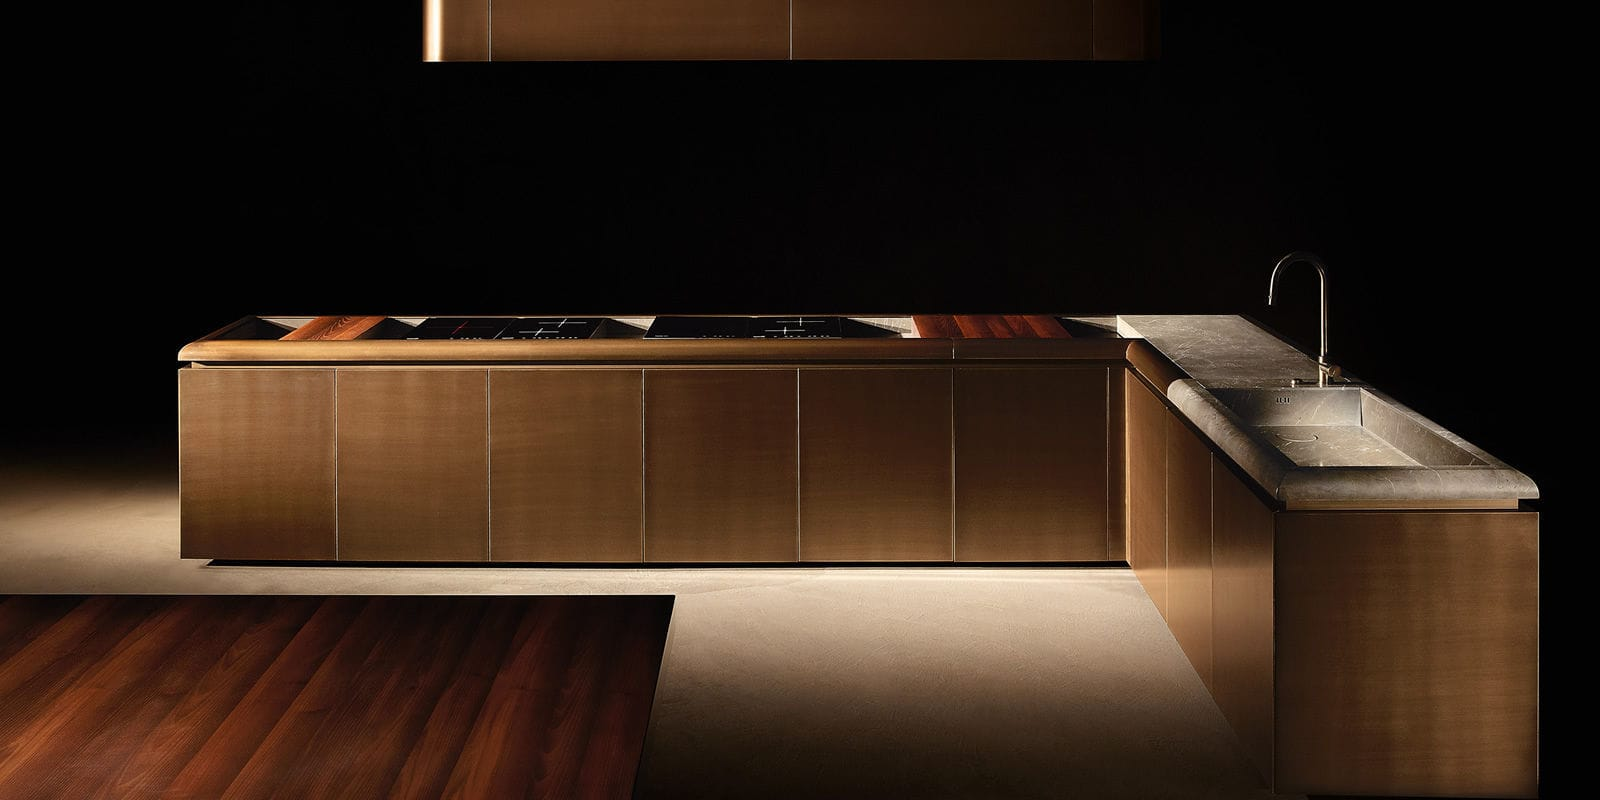 Image result for Contemporary kitchen / marble / wood veneer DC10 vincent